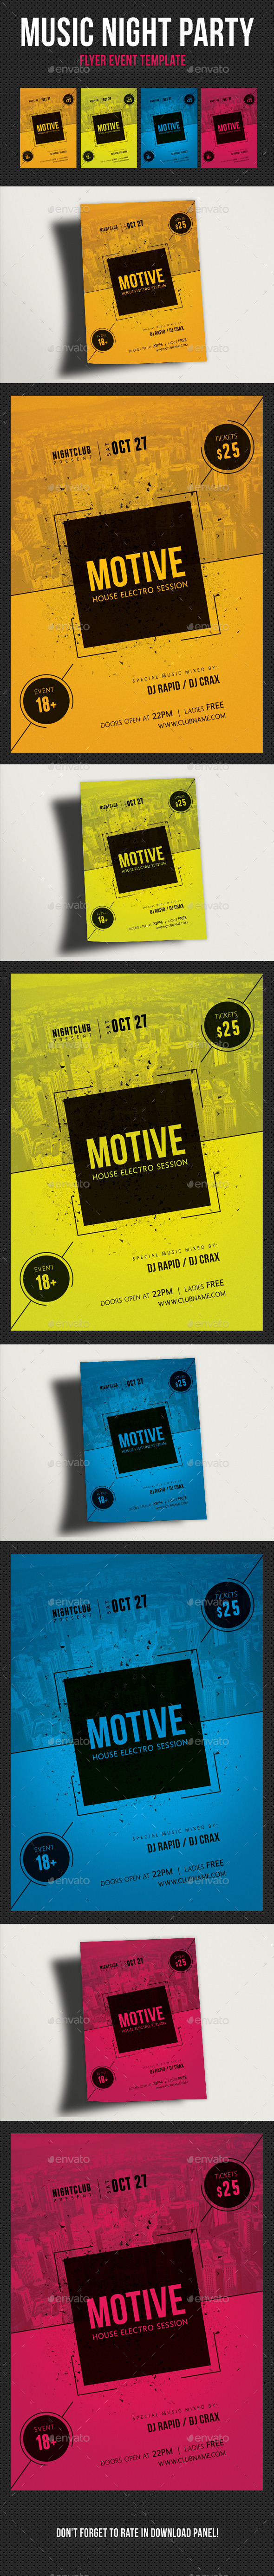 Music Night Party Flyer Template 22